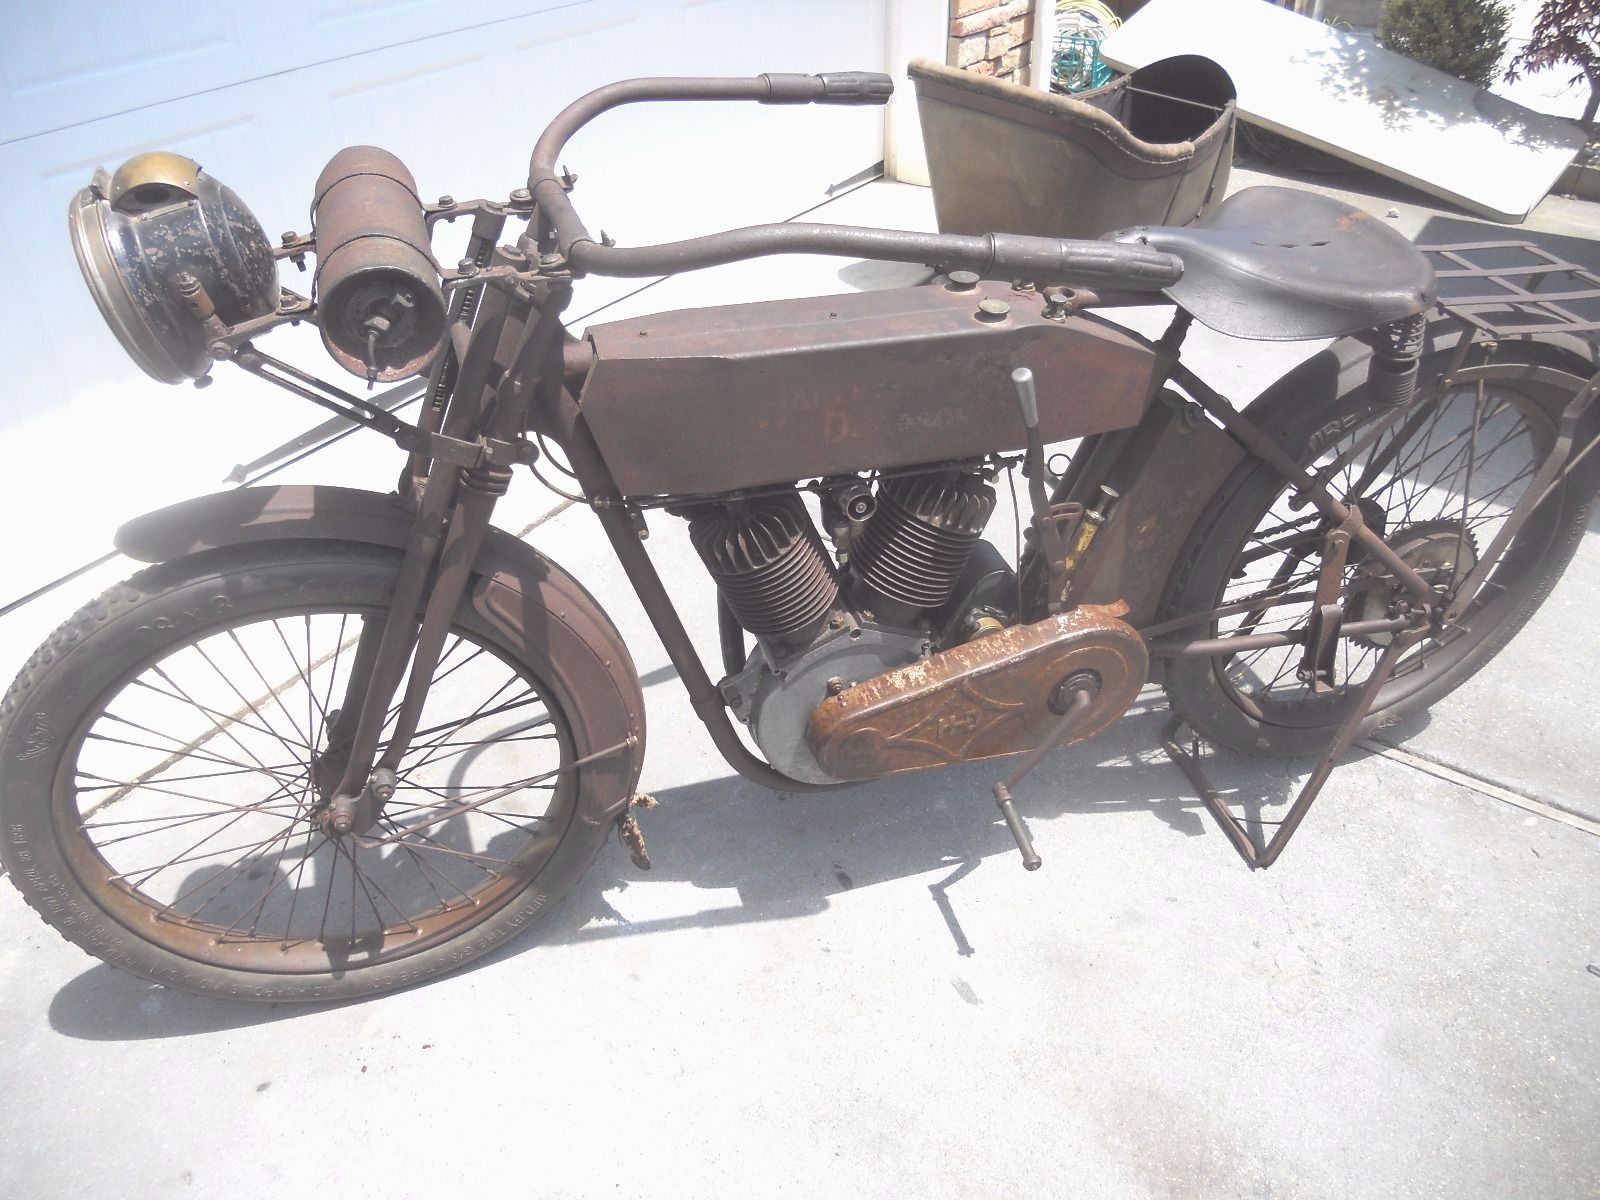 This 1913 Harley-Davidson V twin would be typical of police, army and civilian Harleys of the period.